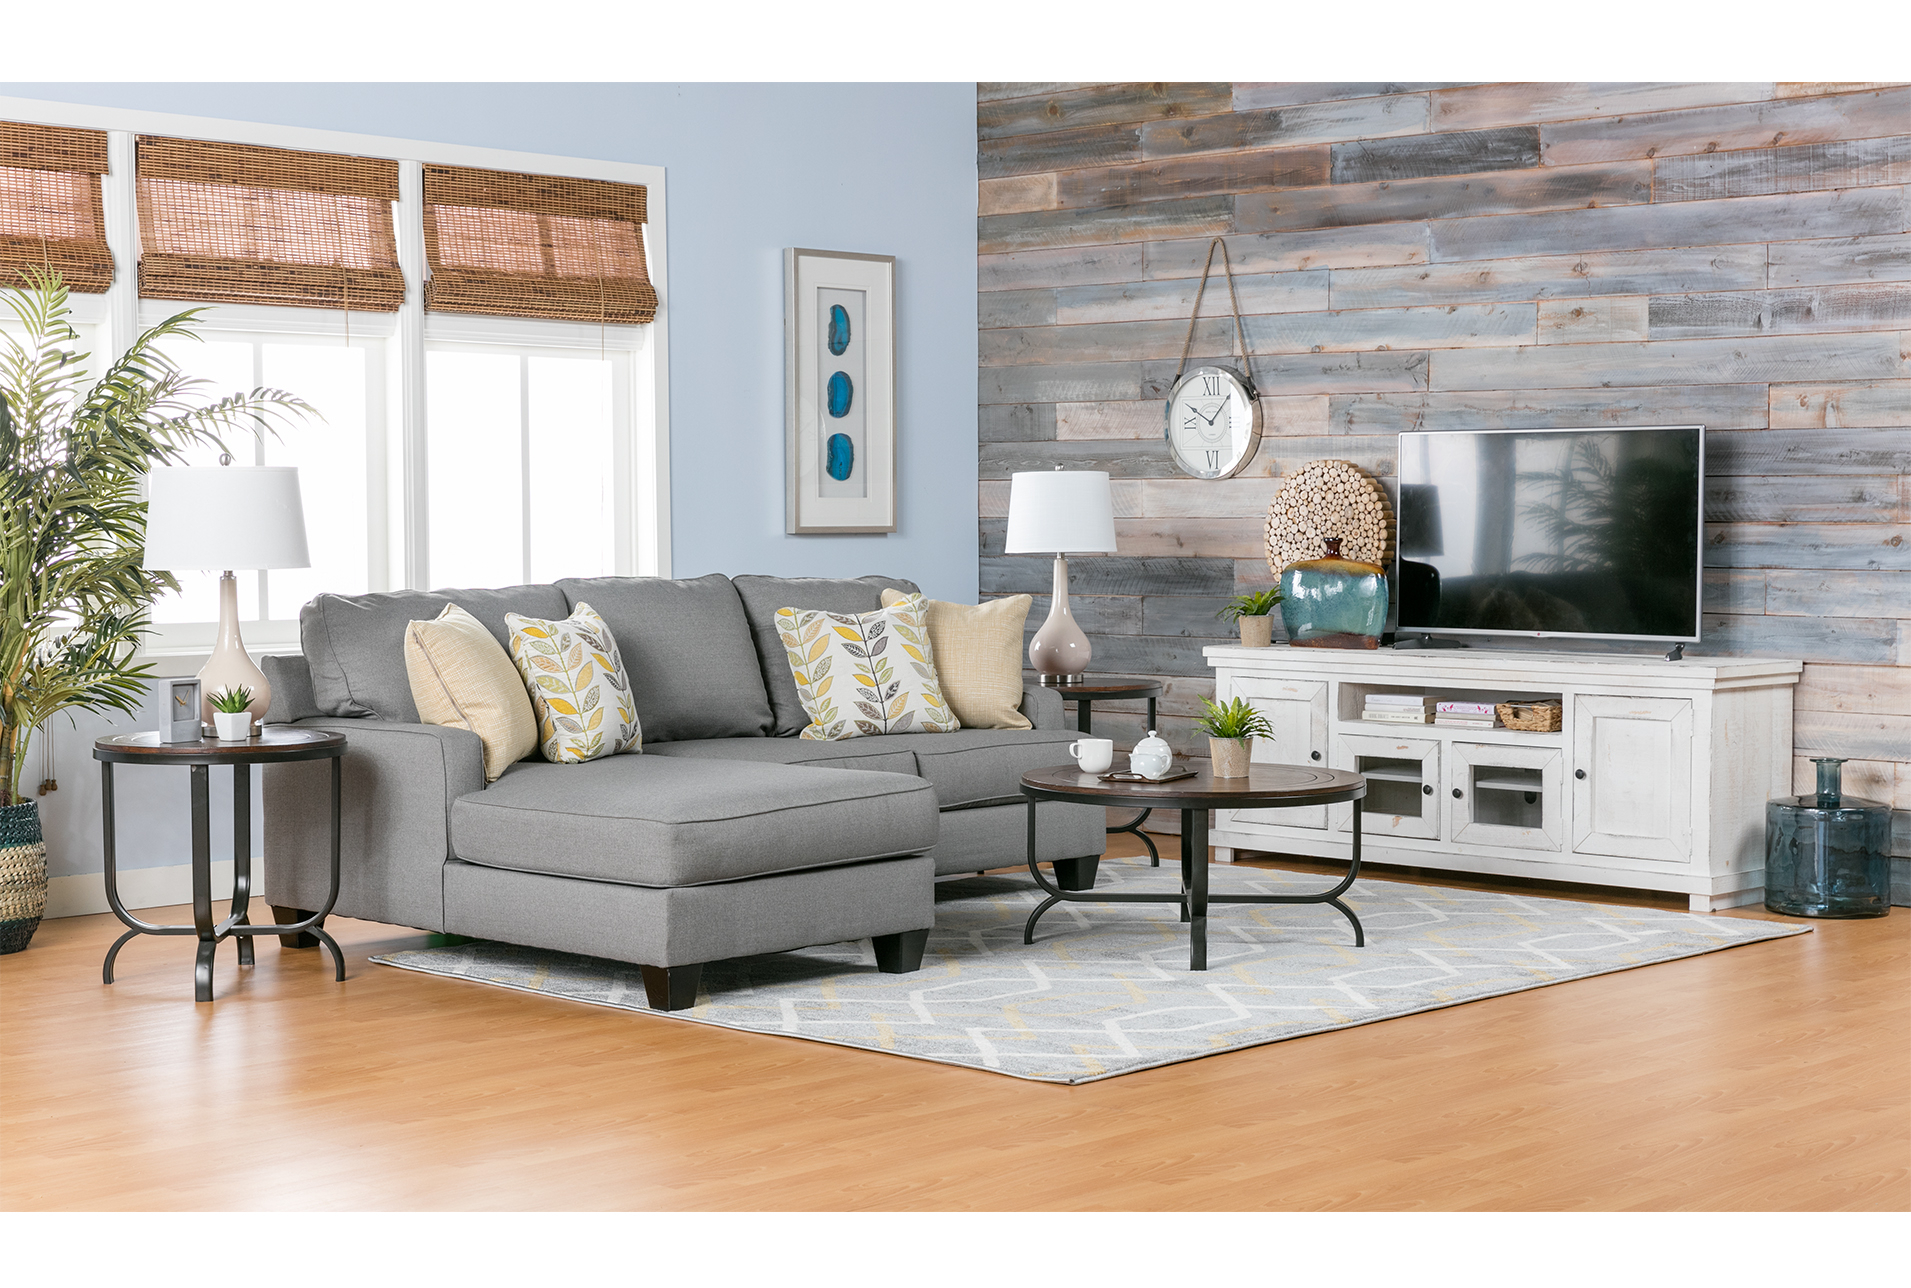 Sinclair White 64 Inch Tv Stand In 2018 | Products | Pinterest | Tvs Inside Sinclair Blue 64 Inch Tv Stands (View 17 of 30)